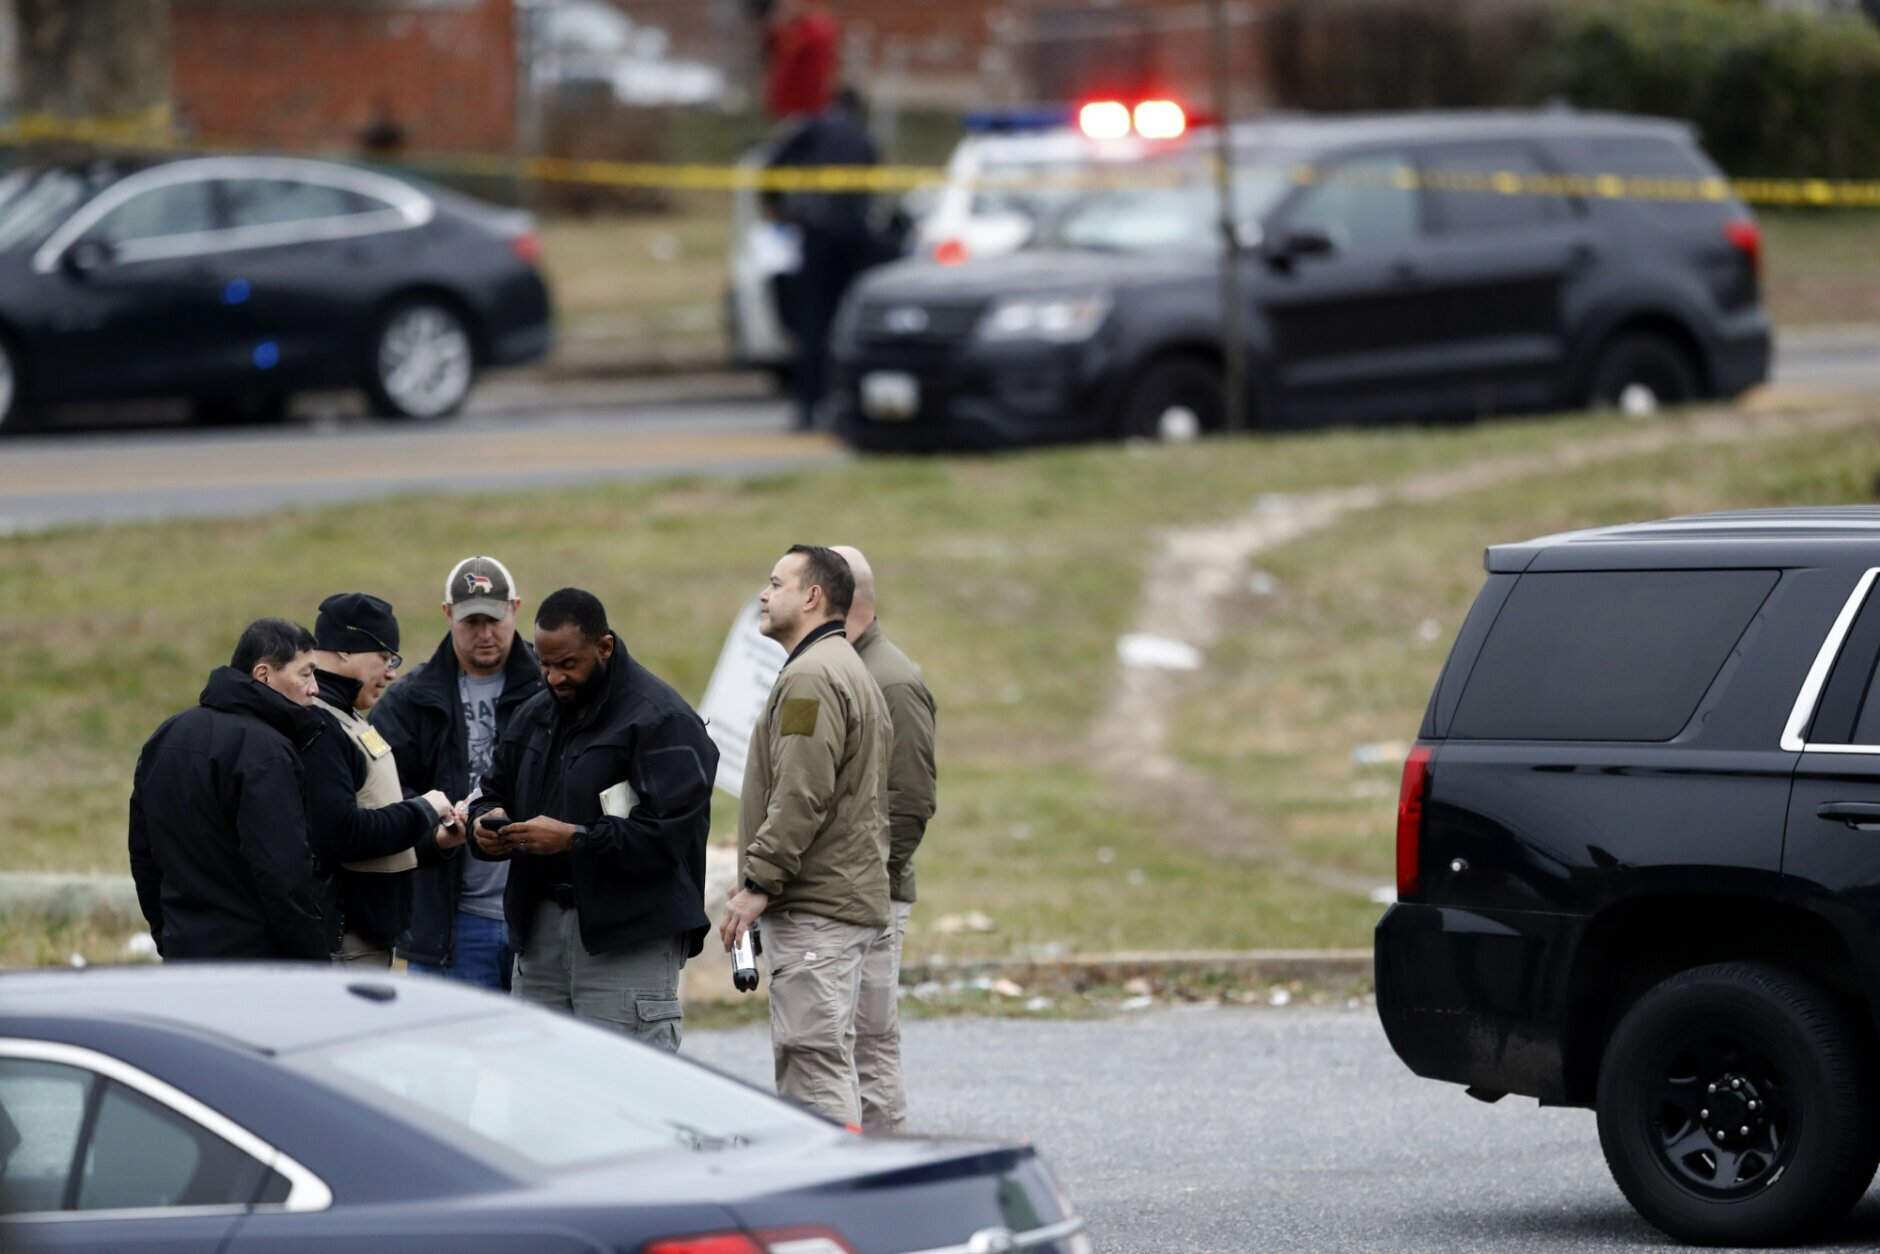 Investigators work the scene of a shooting, Wednesday, Feb. 12, 2020, in Baltimore. Two law enforcement officers with a fugitive task force were injured and a suspect died in the shooting, the U.S. Marshals Service said. (AP Photo/Julio Cortez)